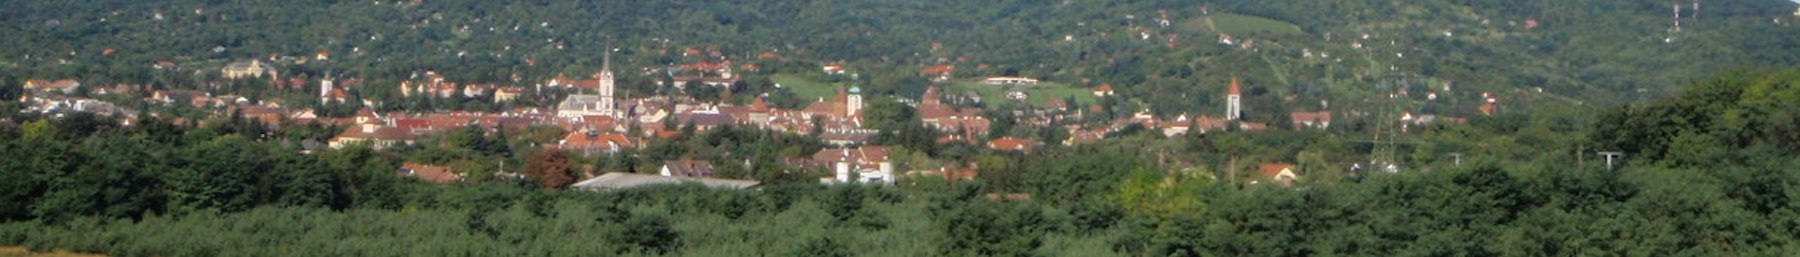 WV banner Vas county Köszeg city view.jpg